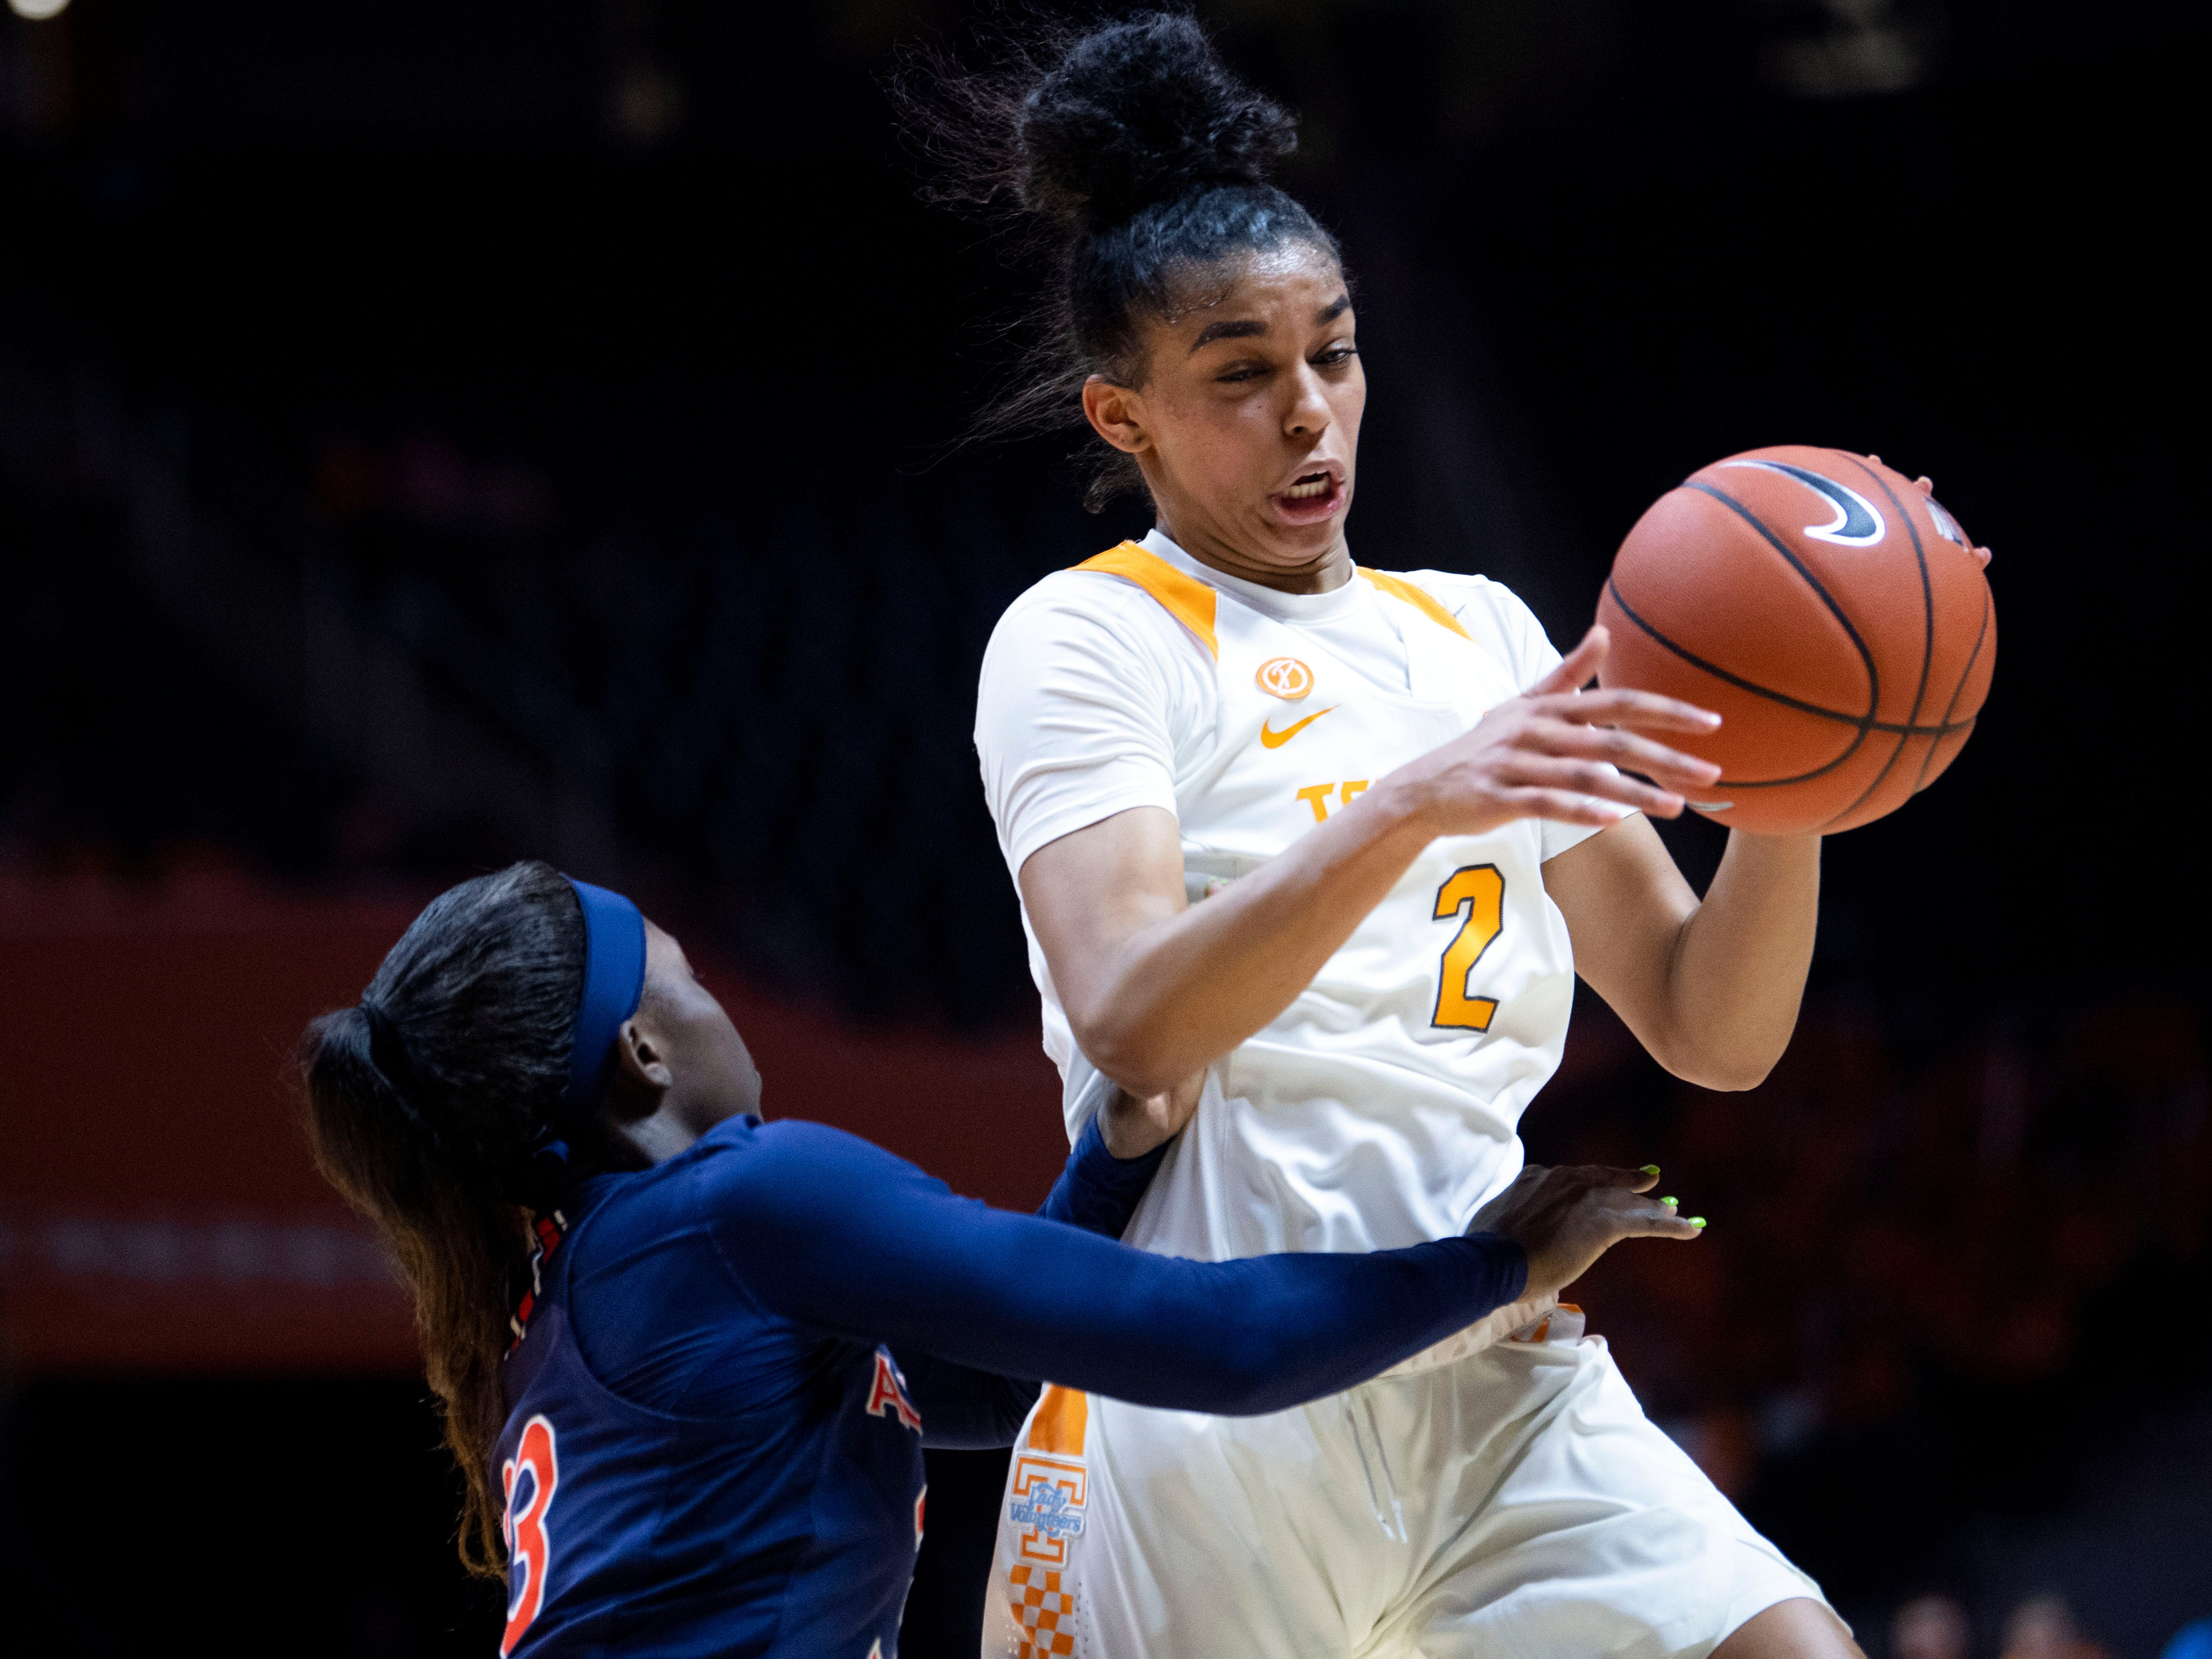 Tennessee's Evina Westbrook (2) is fouled by Auburn's Janiah McKay (33) on Thursday, February 14, 2019.